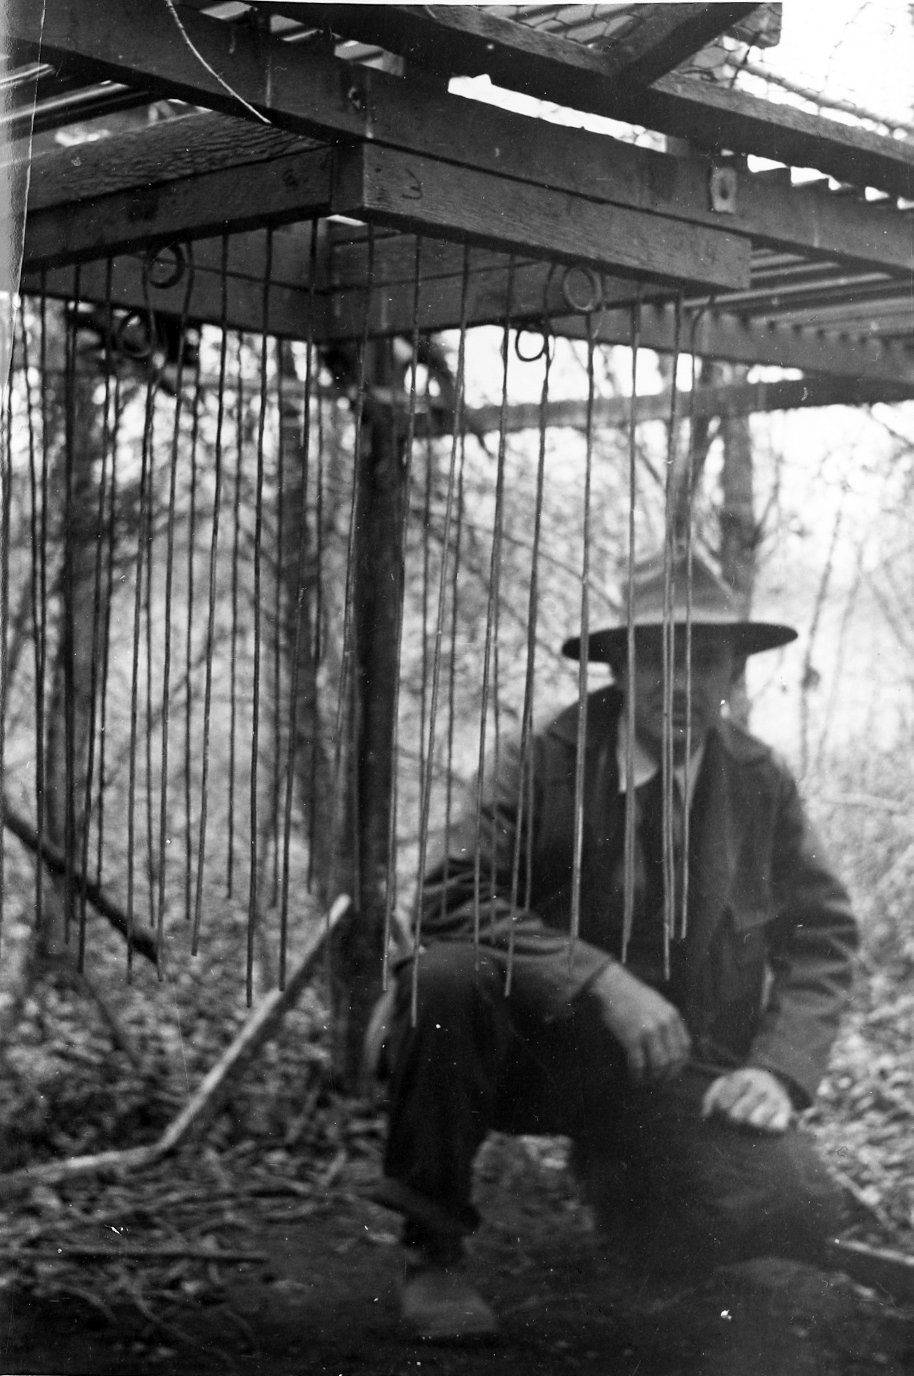 Fred Brandenburg in some sort of enclosure